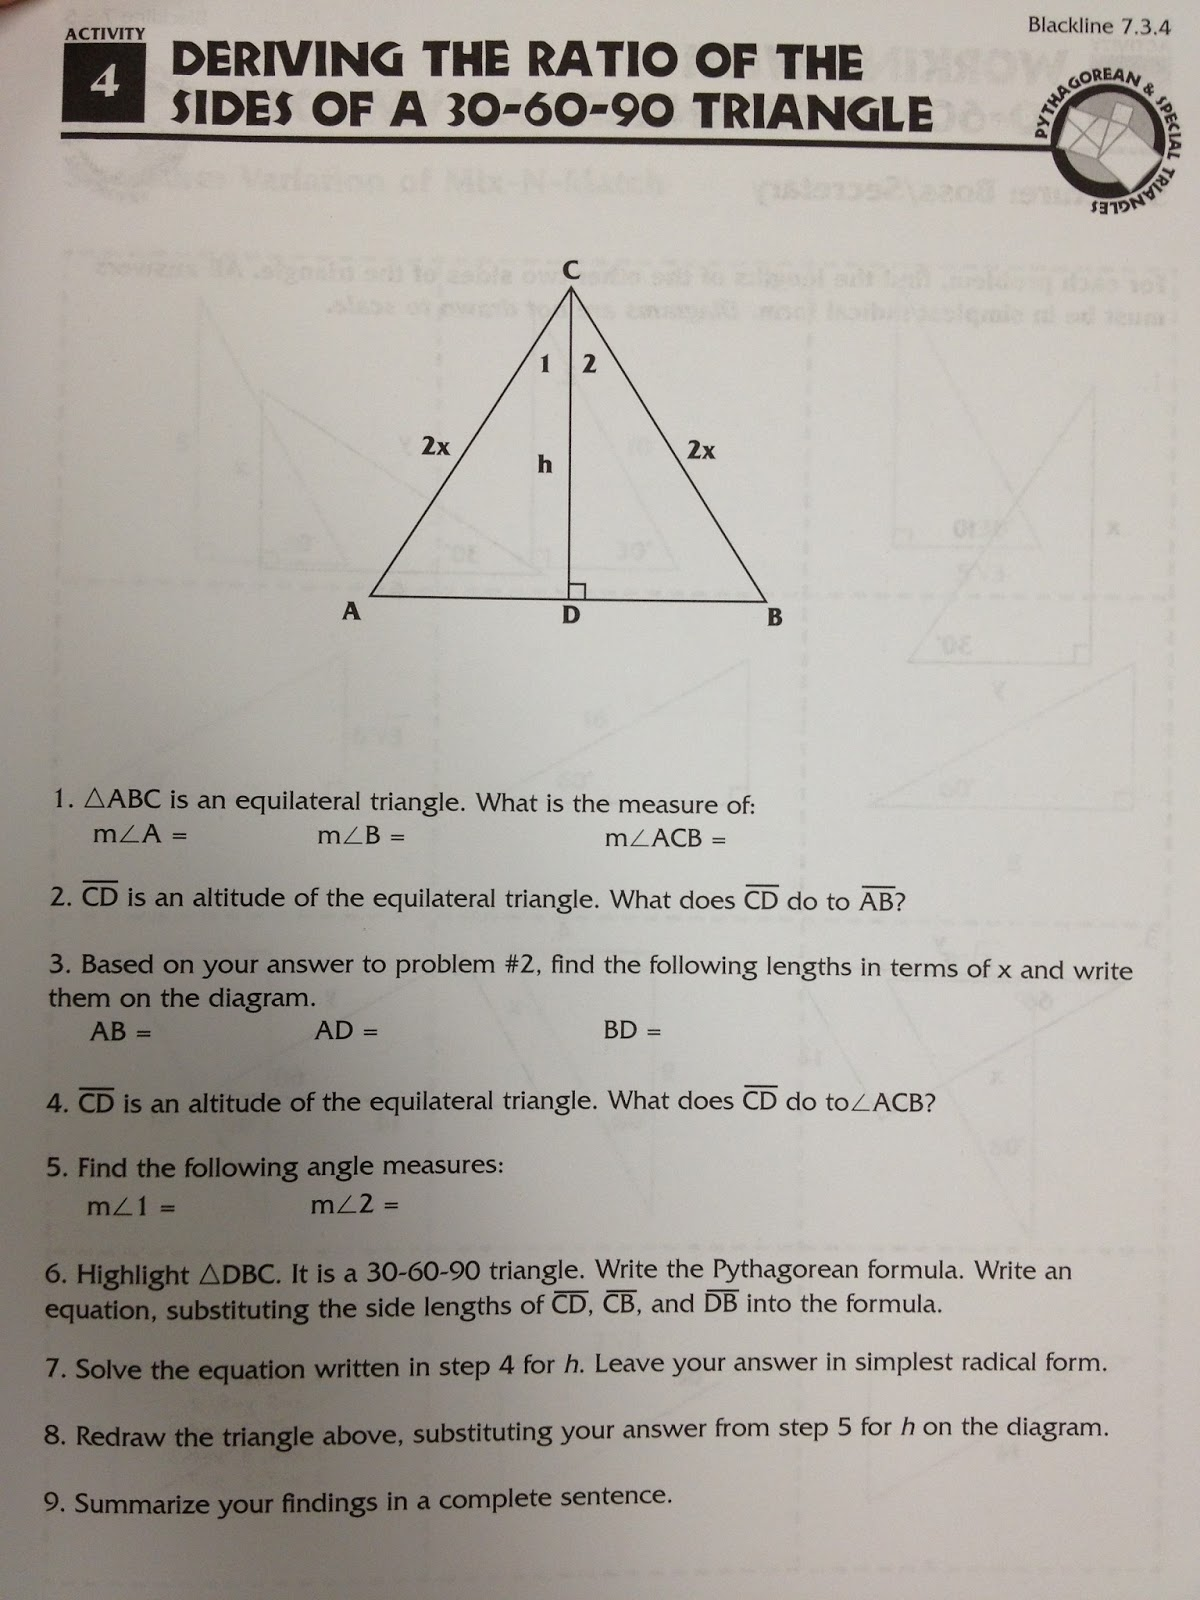 Take An Equilateral Triangle, Its Altitude, And The Pythagorean Theorem To  Find Out The